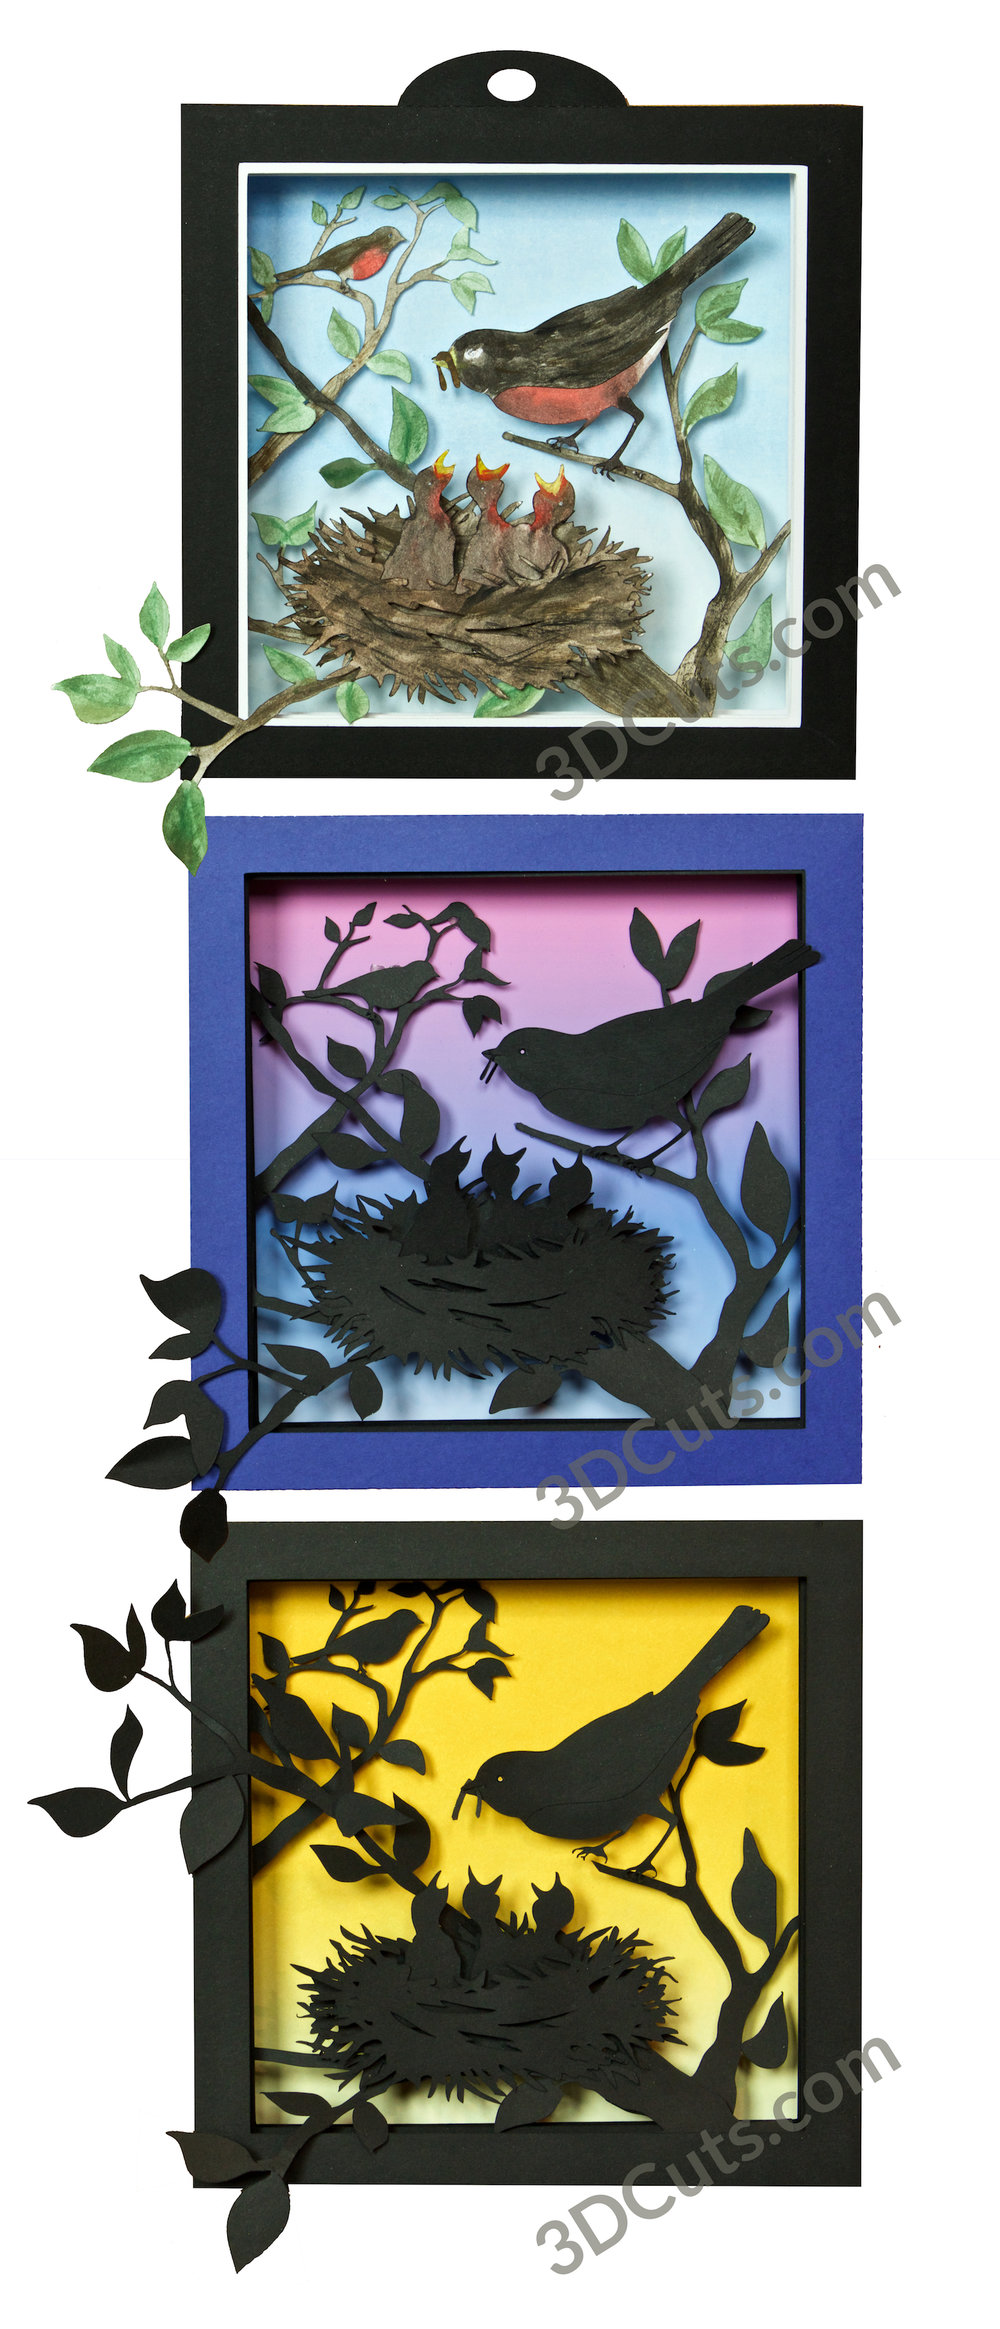 Springtime Robins Shadow box by Marji Roy of 3dcuts.com. This is a cutting file for use on Cricut and Silhouette cutting machine. It is made from card stock. Files available in svg, pdf, png and pdf formats.